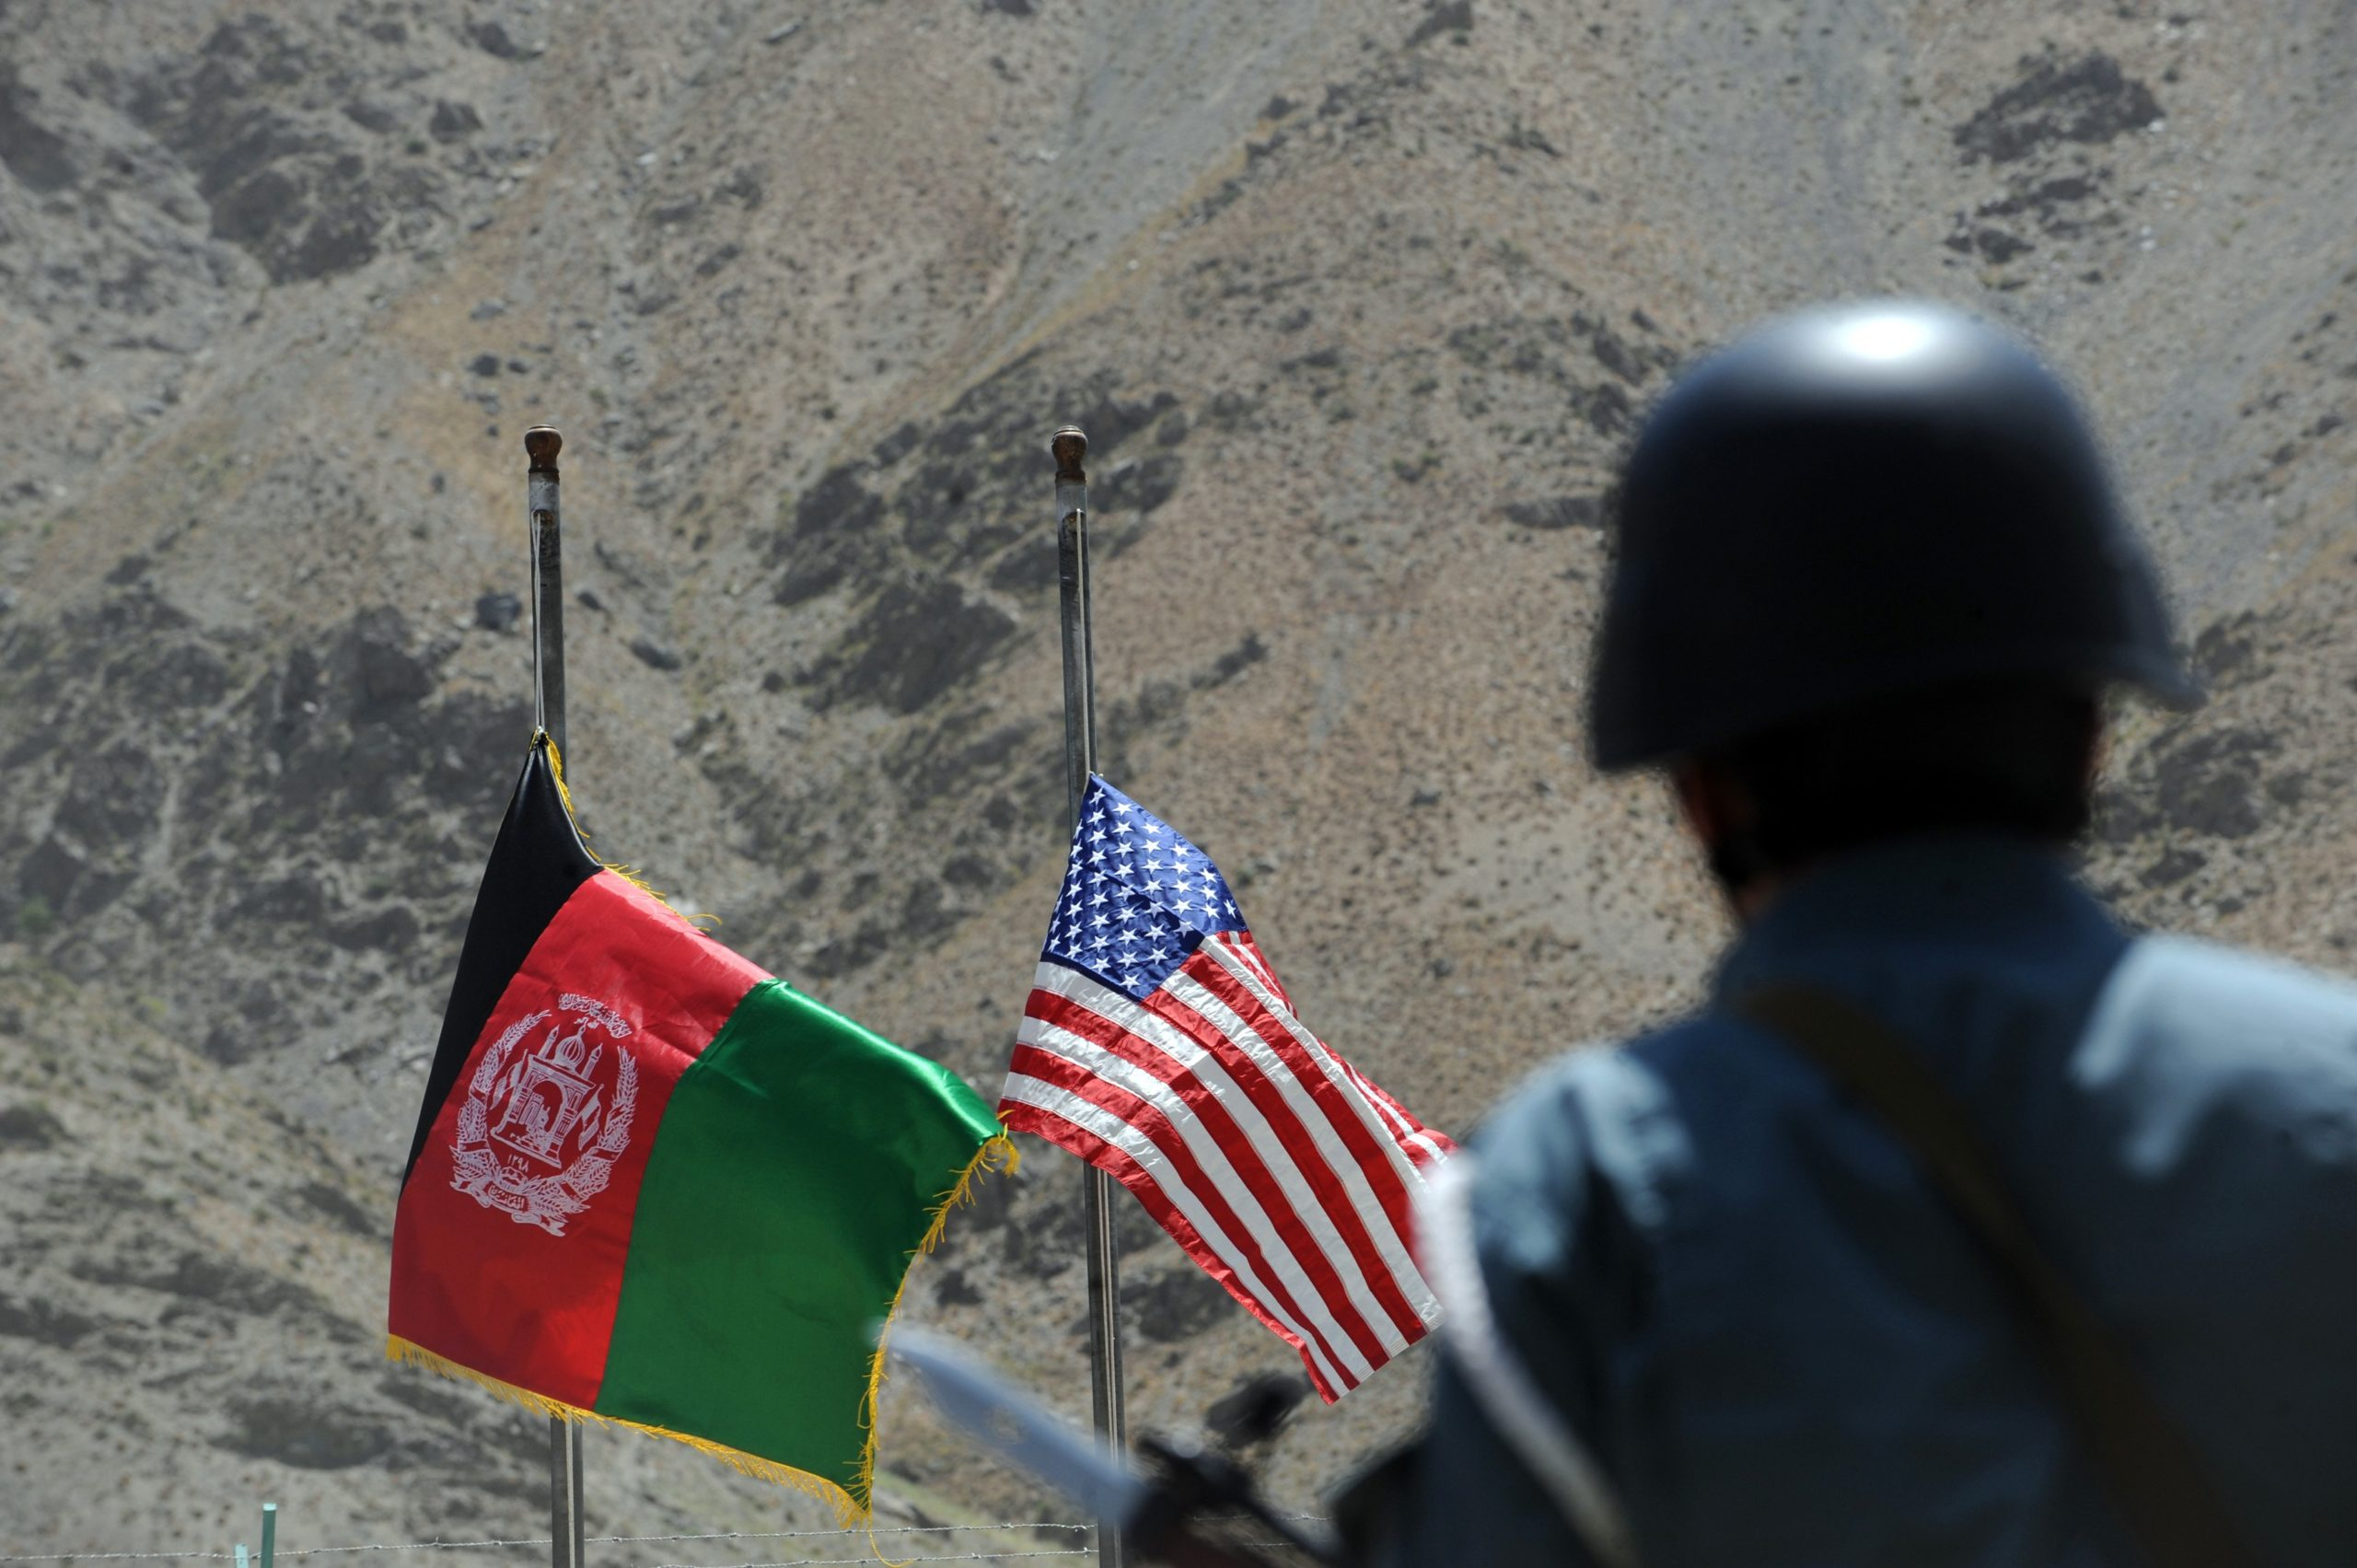 In this file photo taken on July 24, 2011 Afghan and US flags are raised as a policeman keeps watch during a ceremony to hand over security control in the rugged mountains of the Panjshir valley.